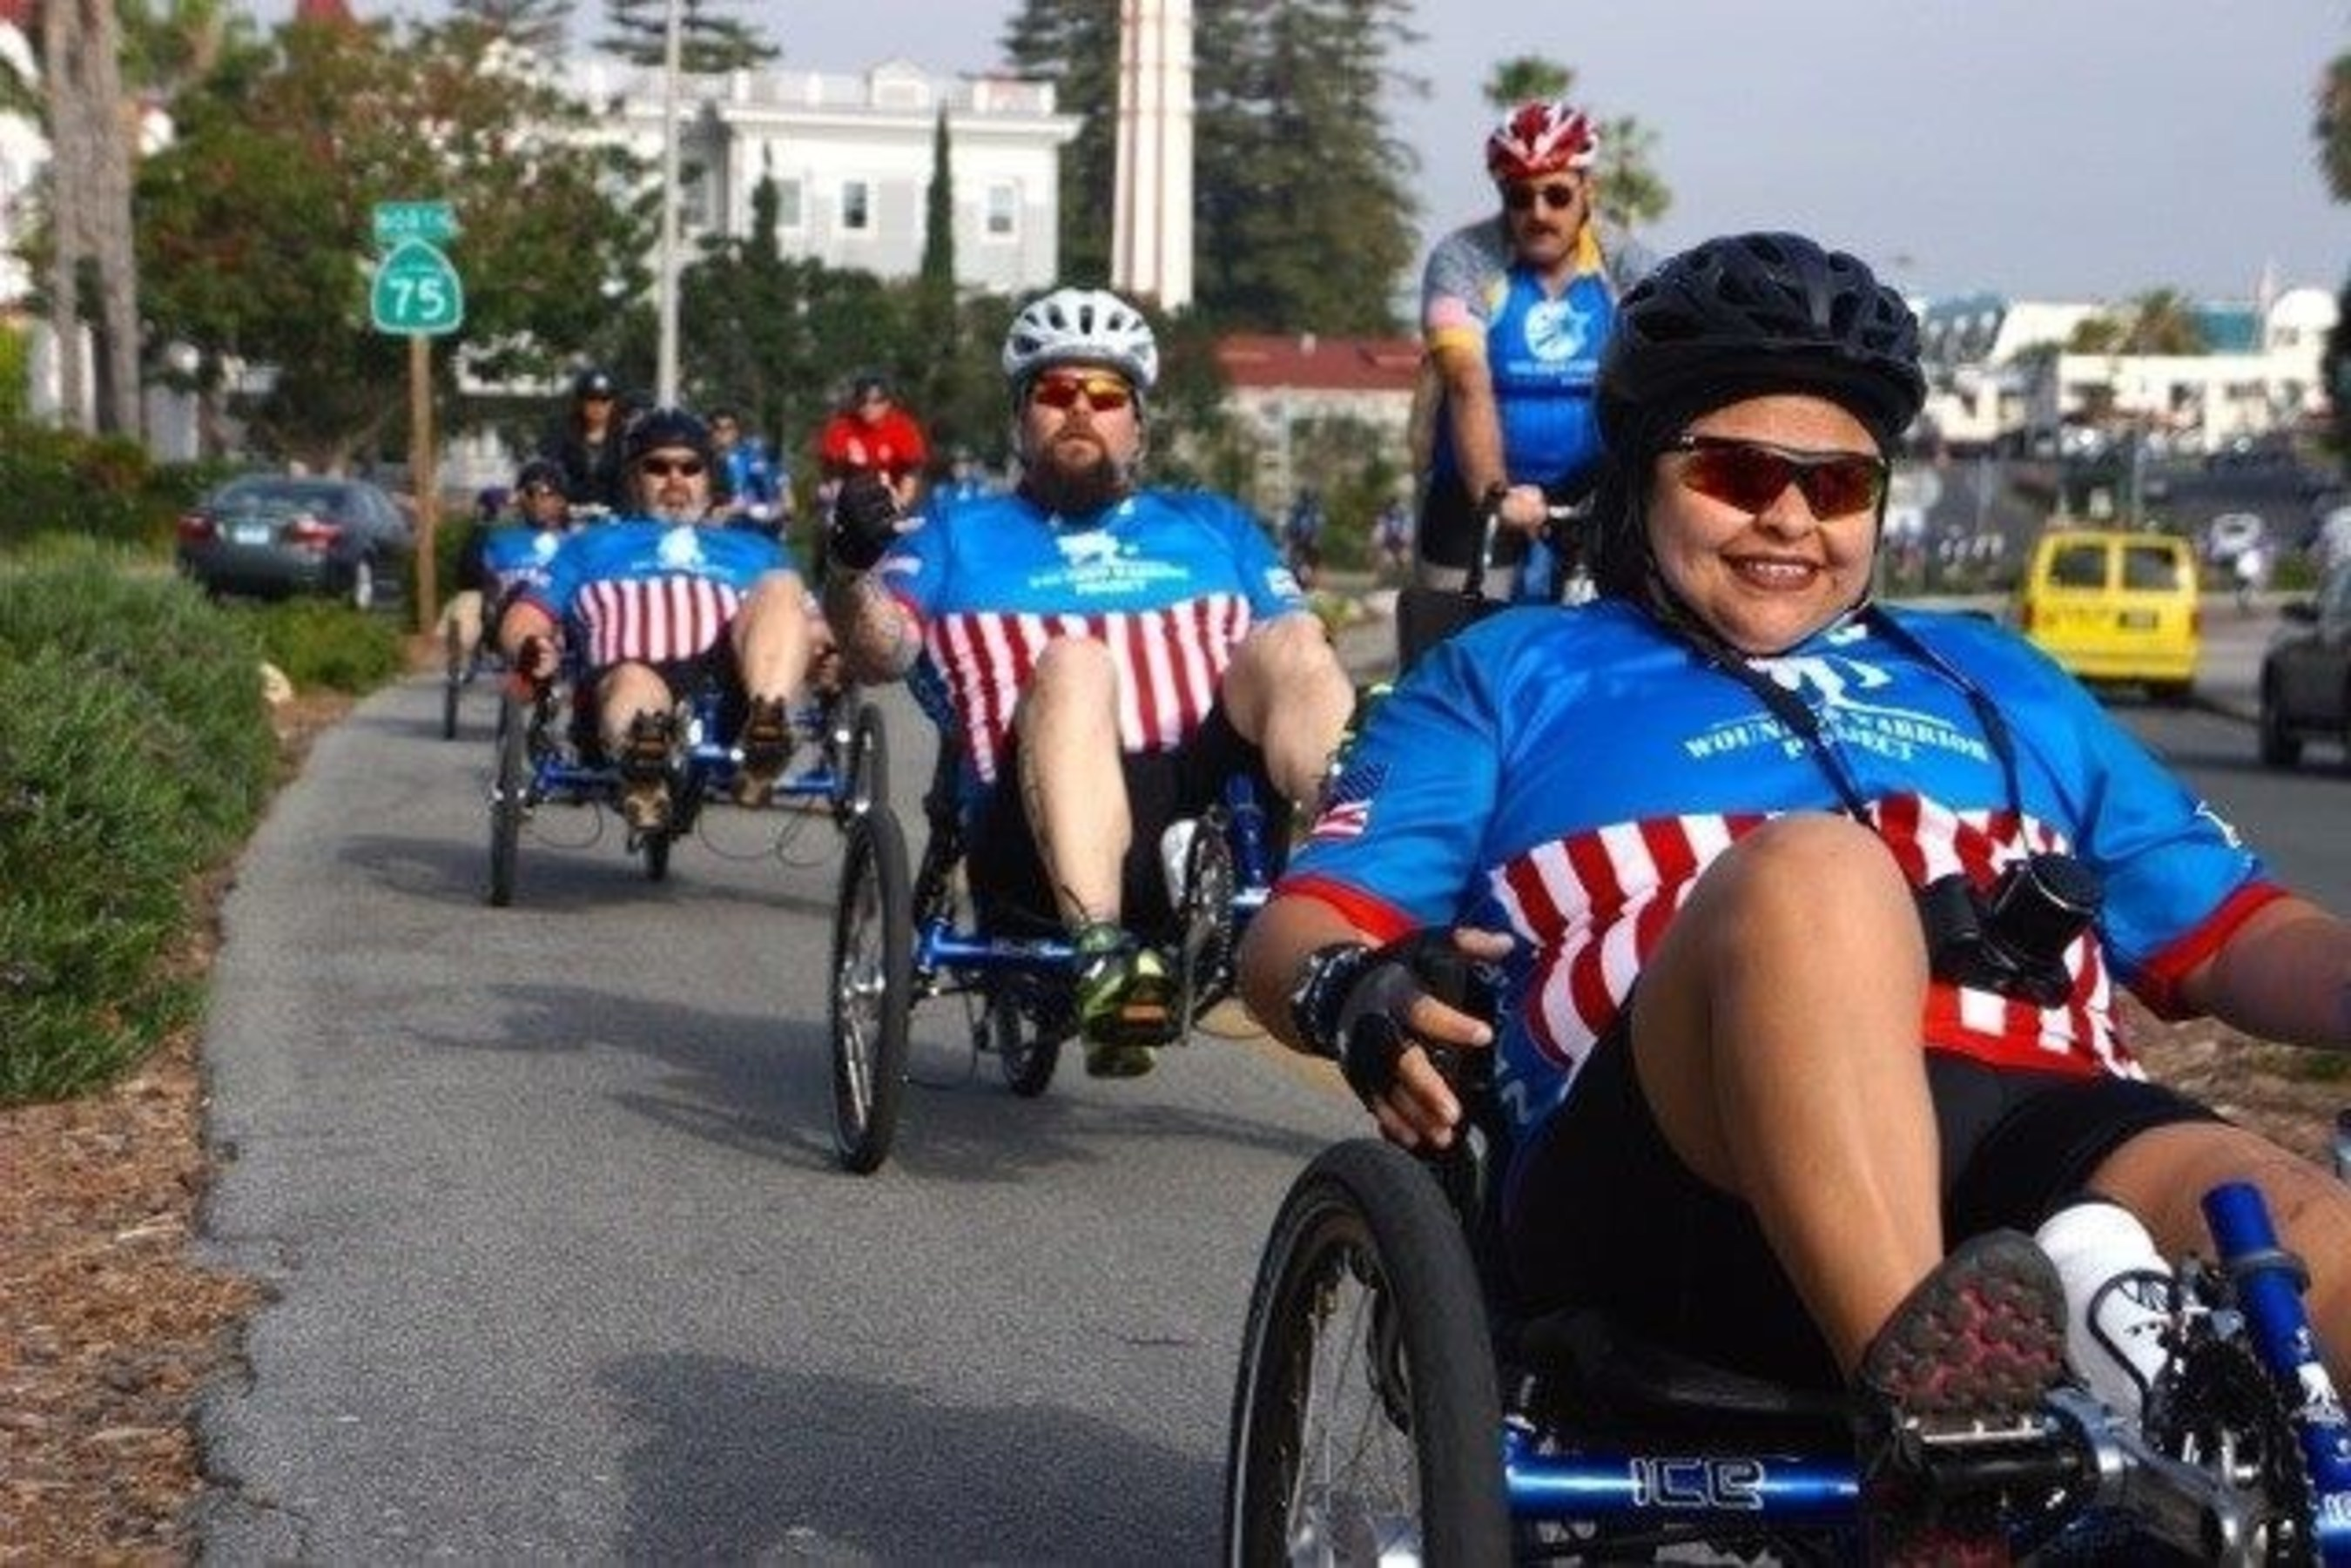 Wounded Warrior Project Alumni riding through San Diego.